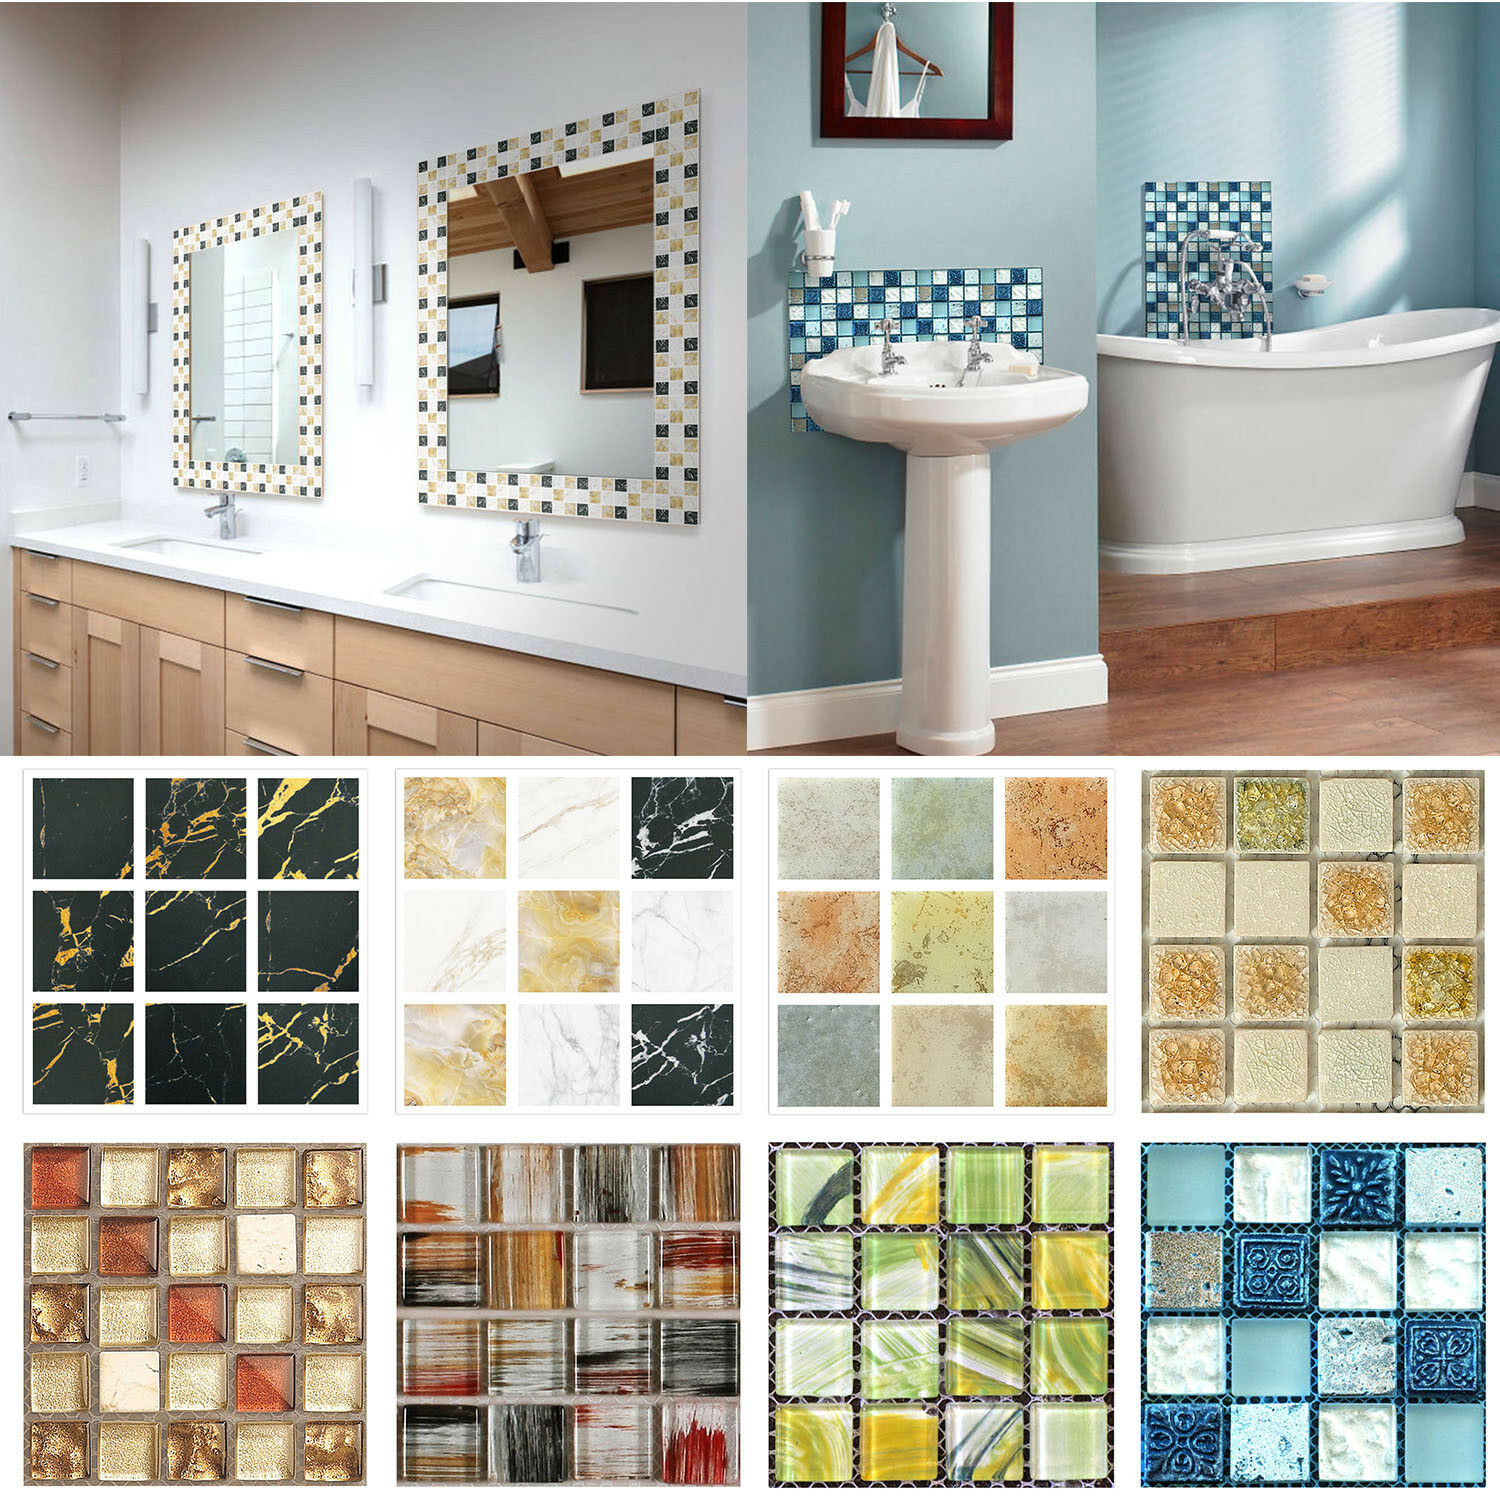 Home Decoration - 20pcs/set 3D DIY Waterproof Self Adhesive Wall Stickers Mosaic Tile Home Decal